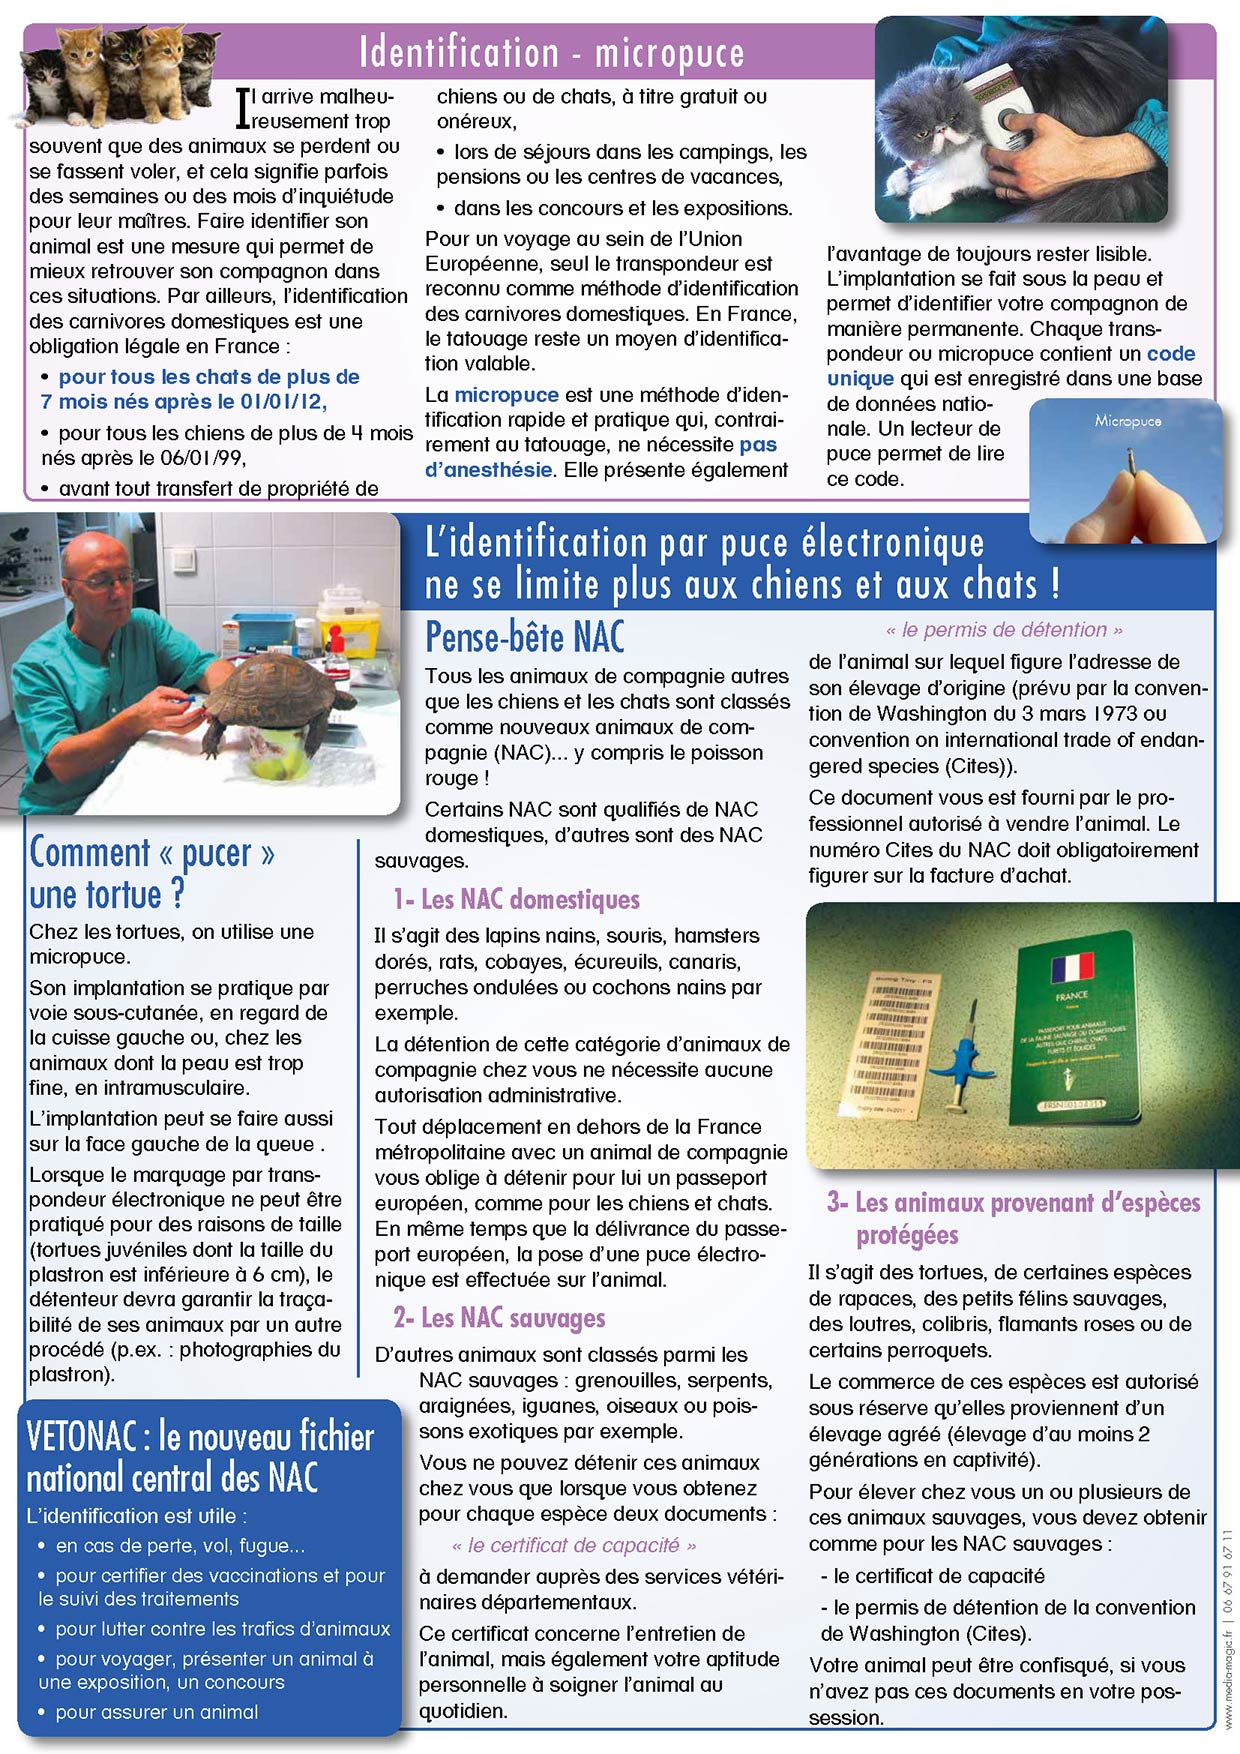 PARME Infos N°3 - Hiver 2013-14 page 2